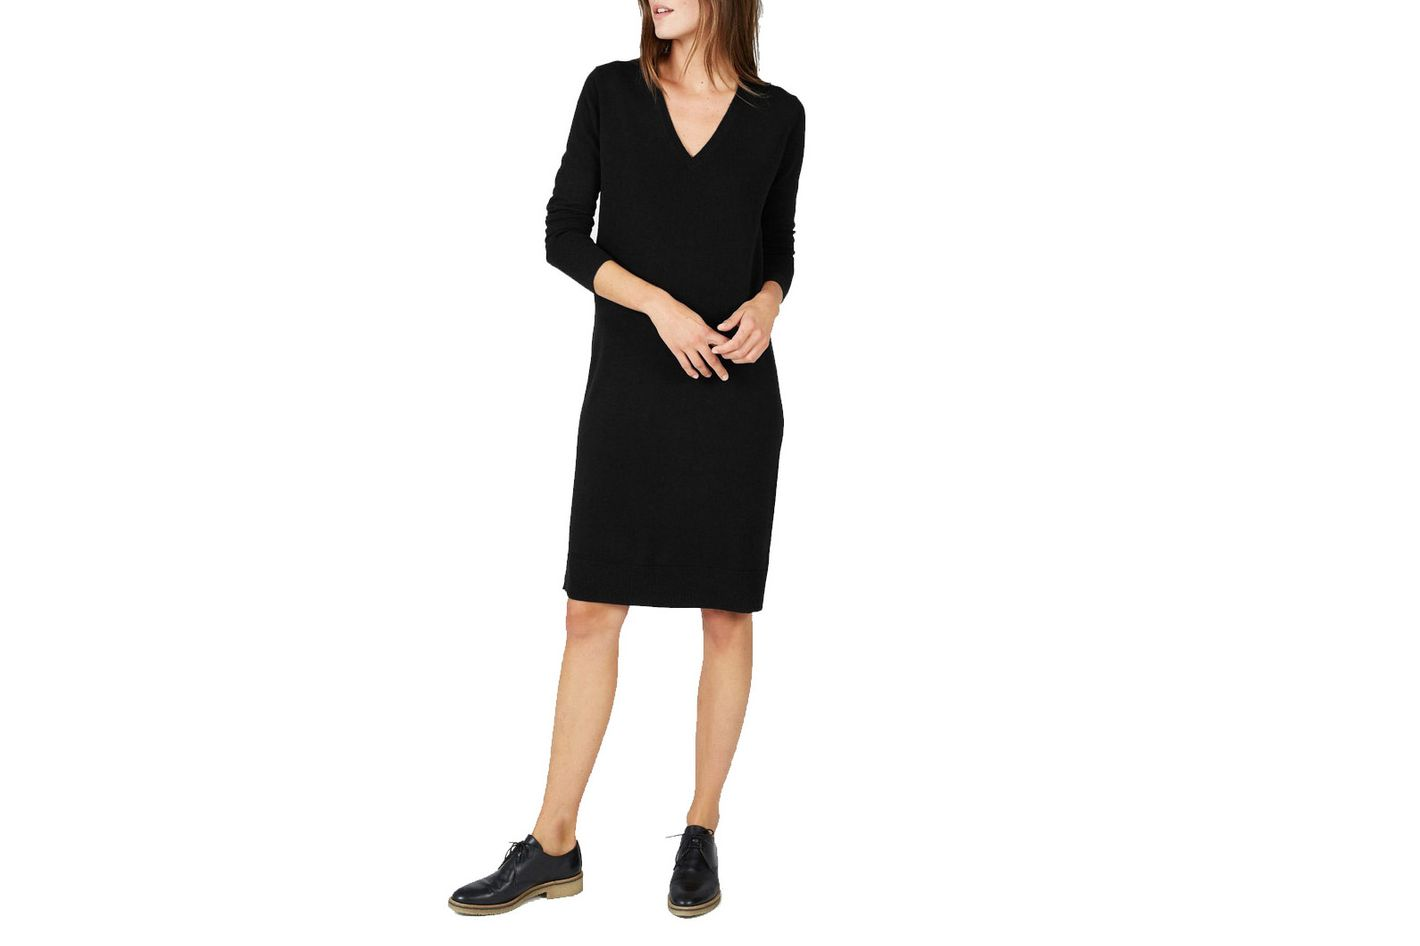 Everlane The Cashmere V-neck midi-dress